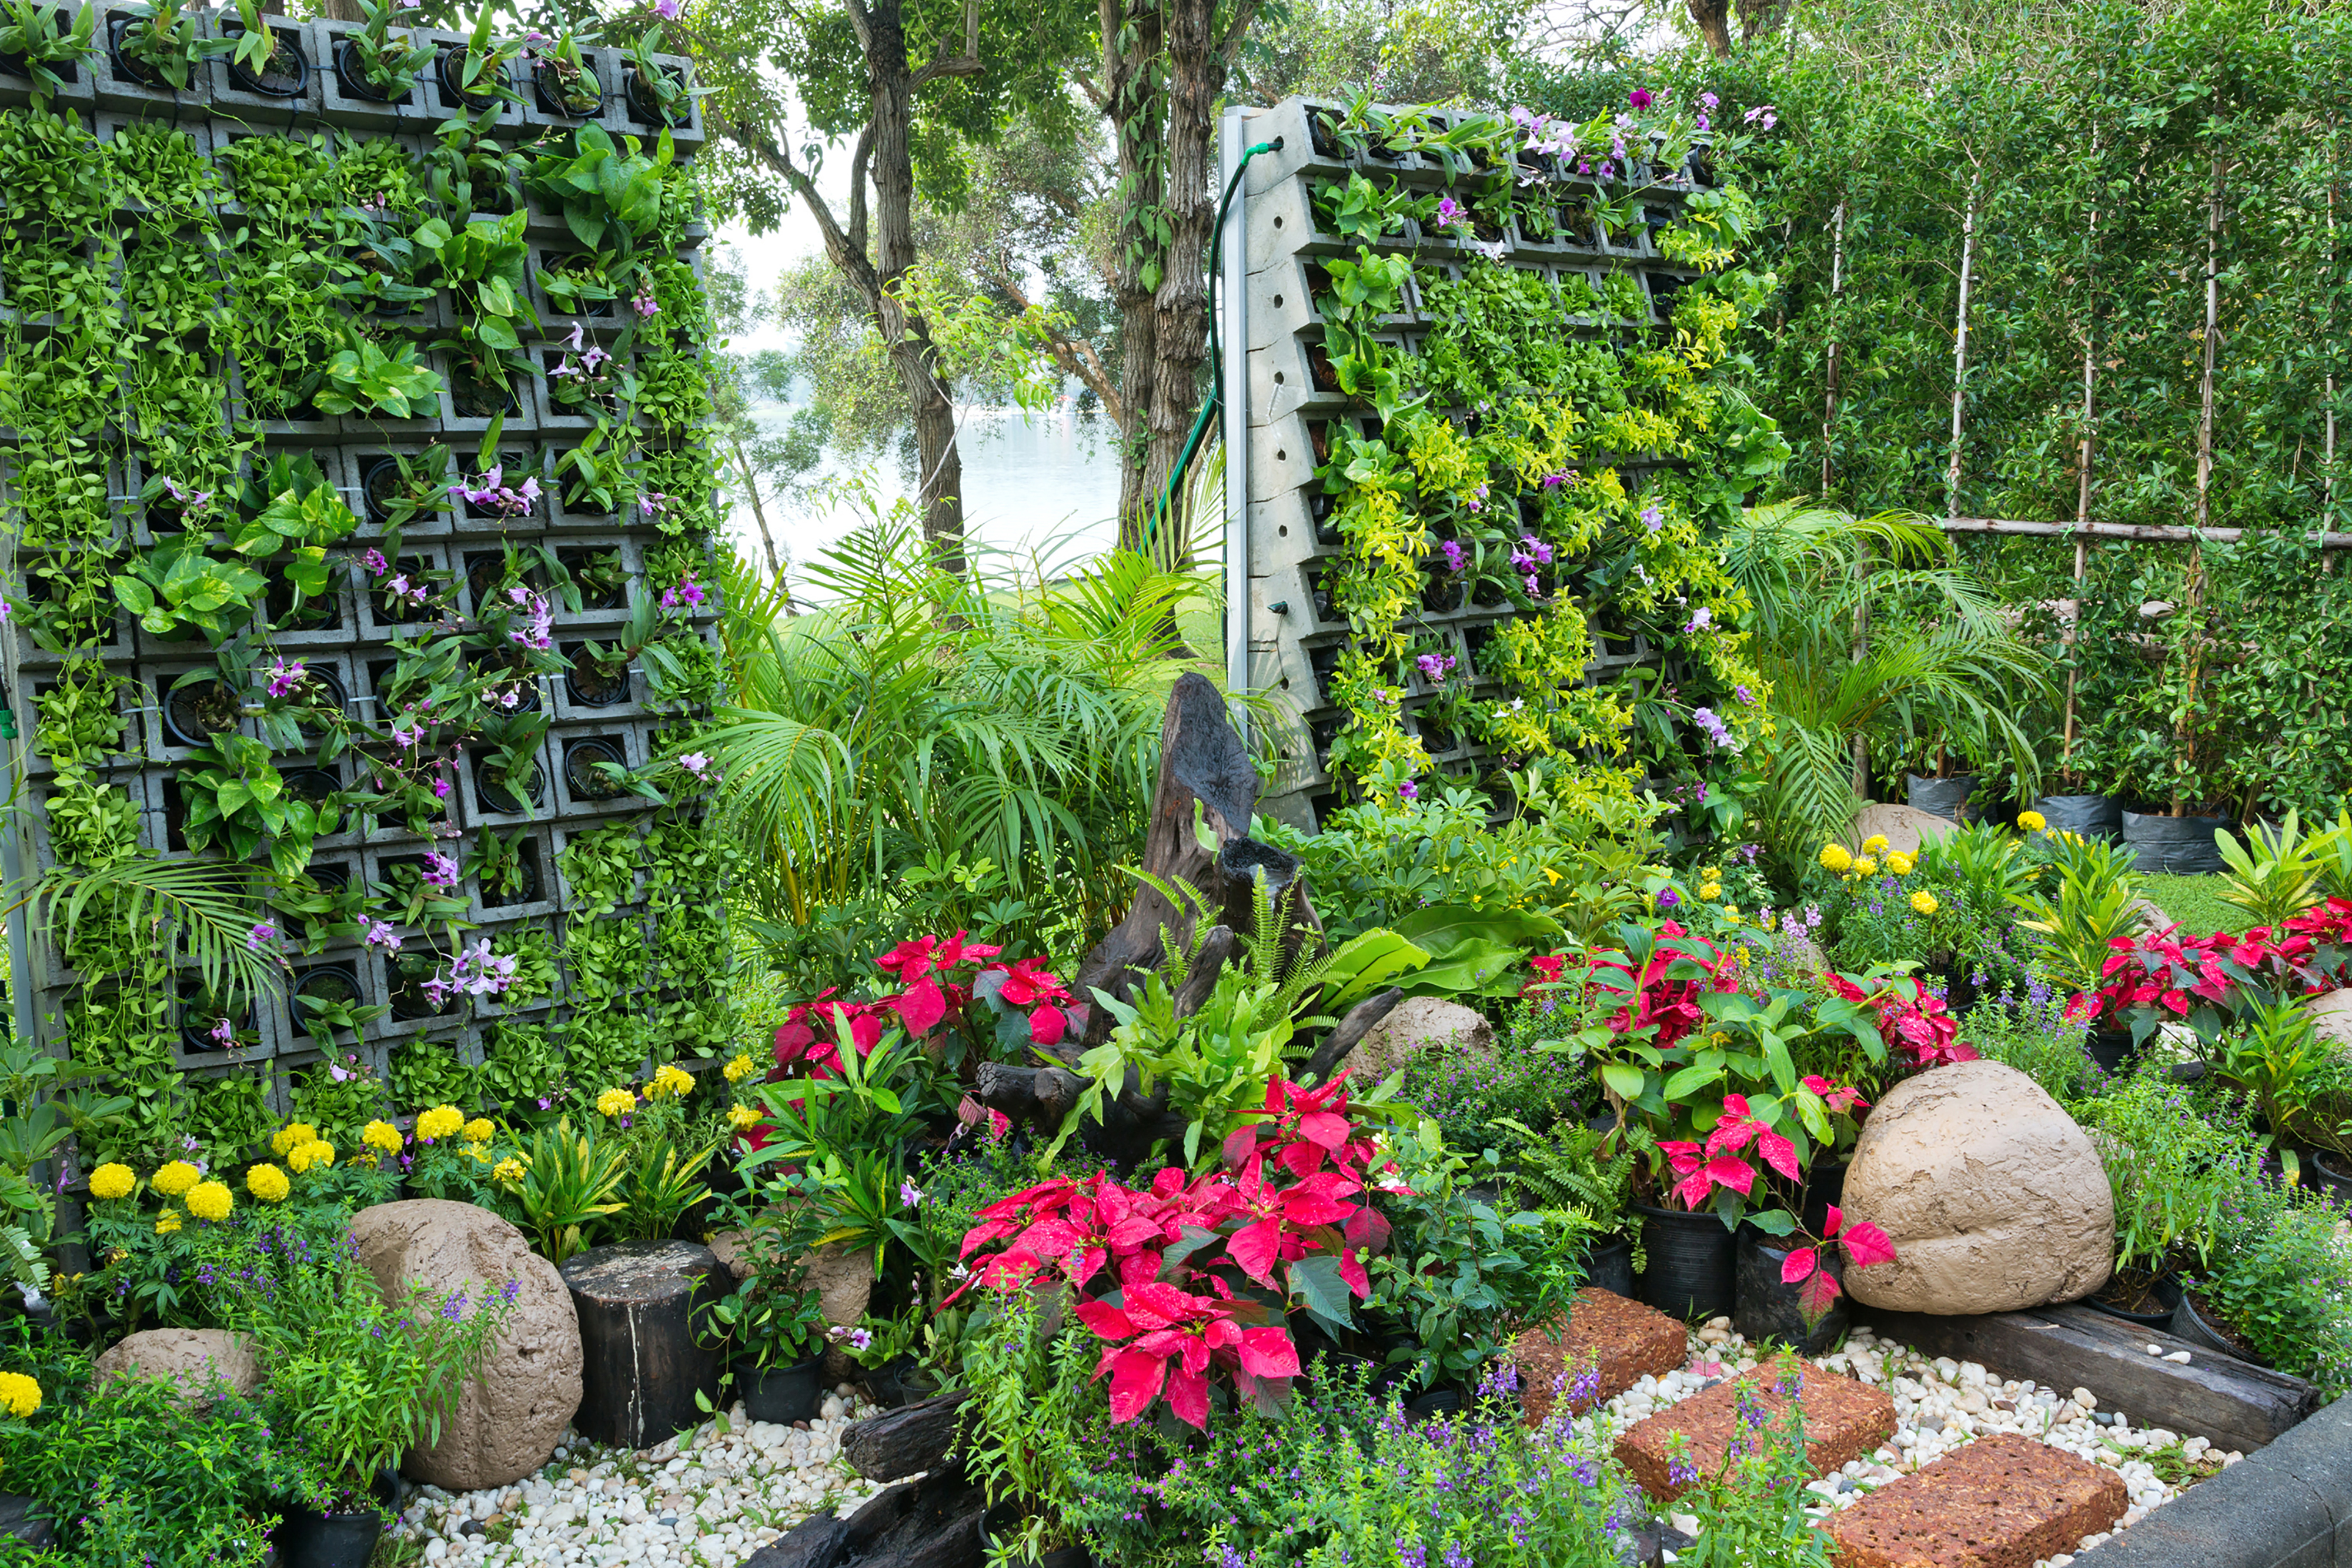 8 Amazing Benefits of Planting a Vertical Garden